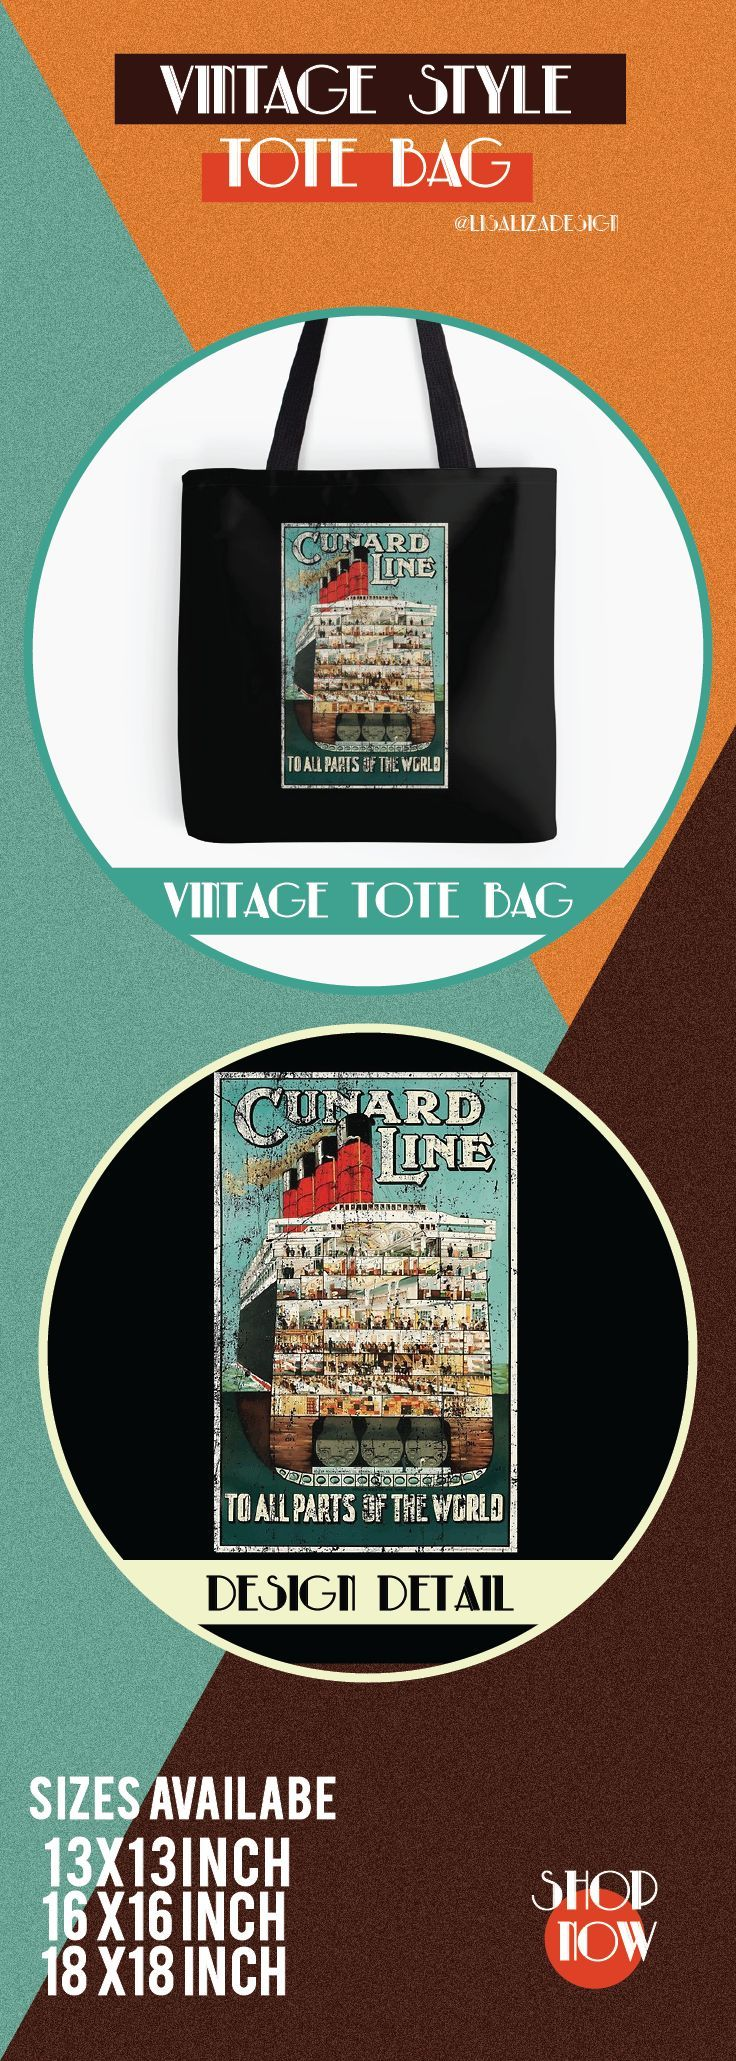 Vintage Travel Poster, Aged and Weathered - Cunard Line.  ToteBags  A collection design inspired by vintage travel and advertisements posters  from the late 19th century printed on durable tote bags. 3 Sizes available.  Excellent gift ideas for vintage lovers and everyone. #vintage #hugs #holidaygift #oldies #homedecor #retro #travelposter #totebag #redbubble #teepublic #lisalizadesign #vintageposter #oldies